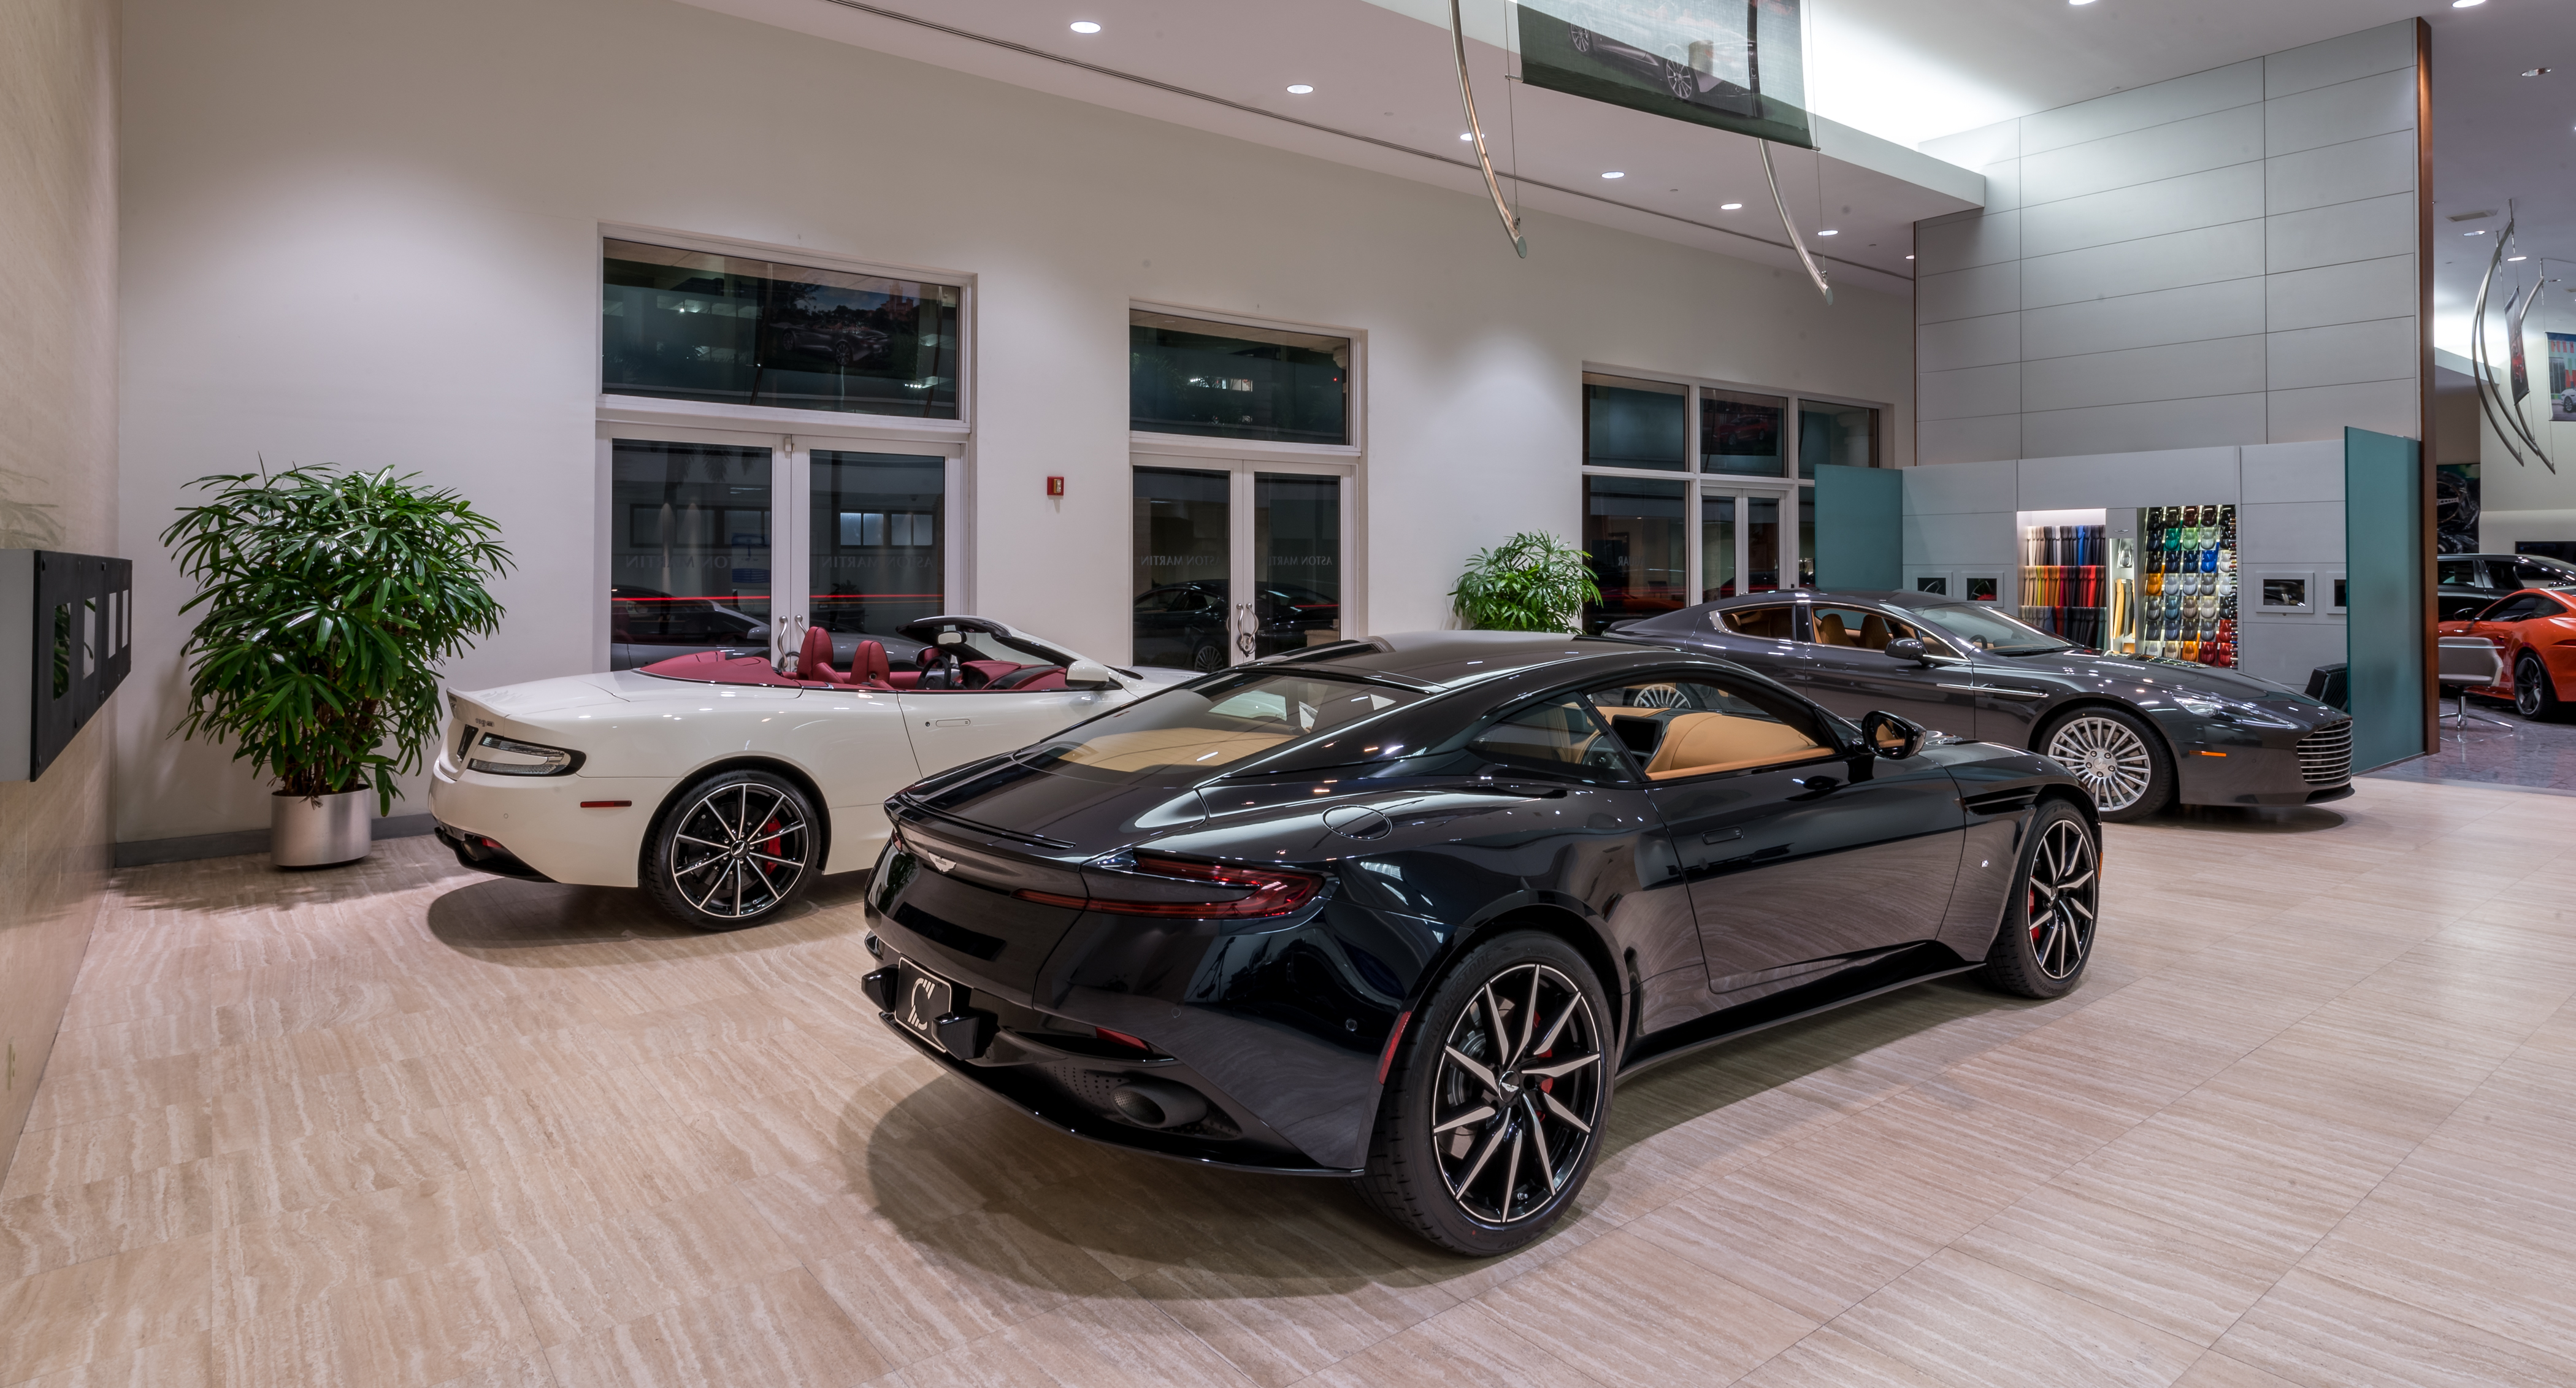 About The Collection Miamis Official Aston Martin Dealer - Aston martin dealer miami